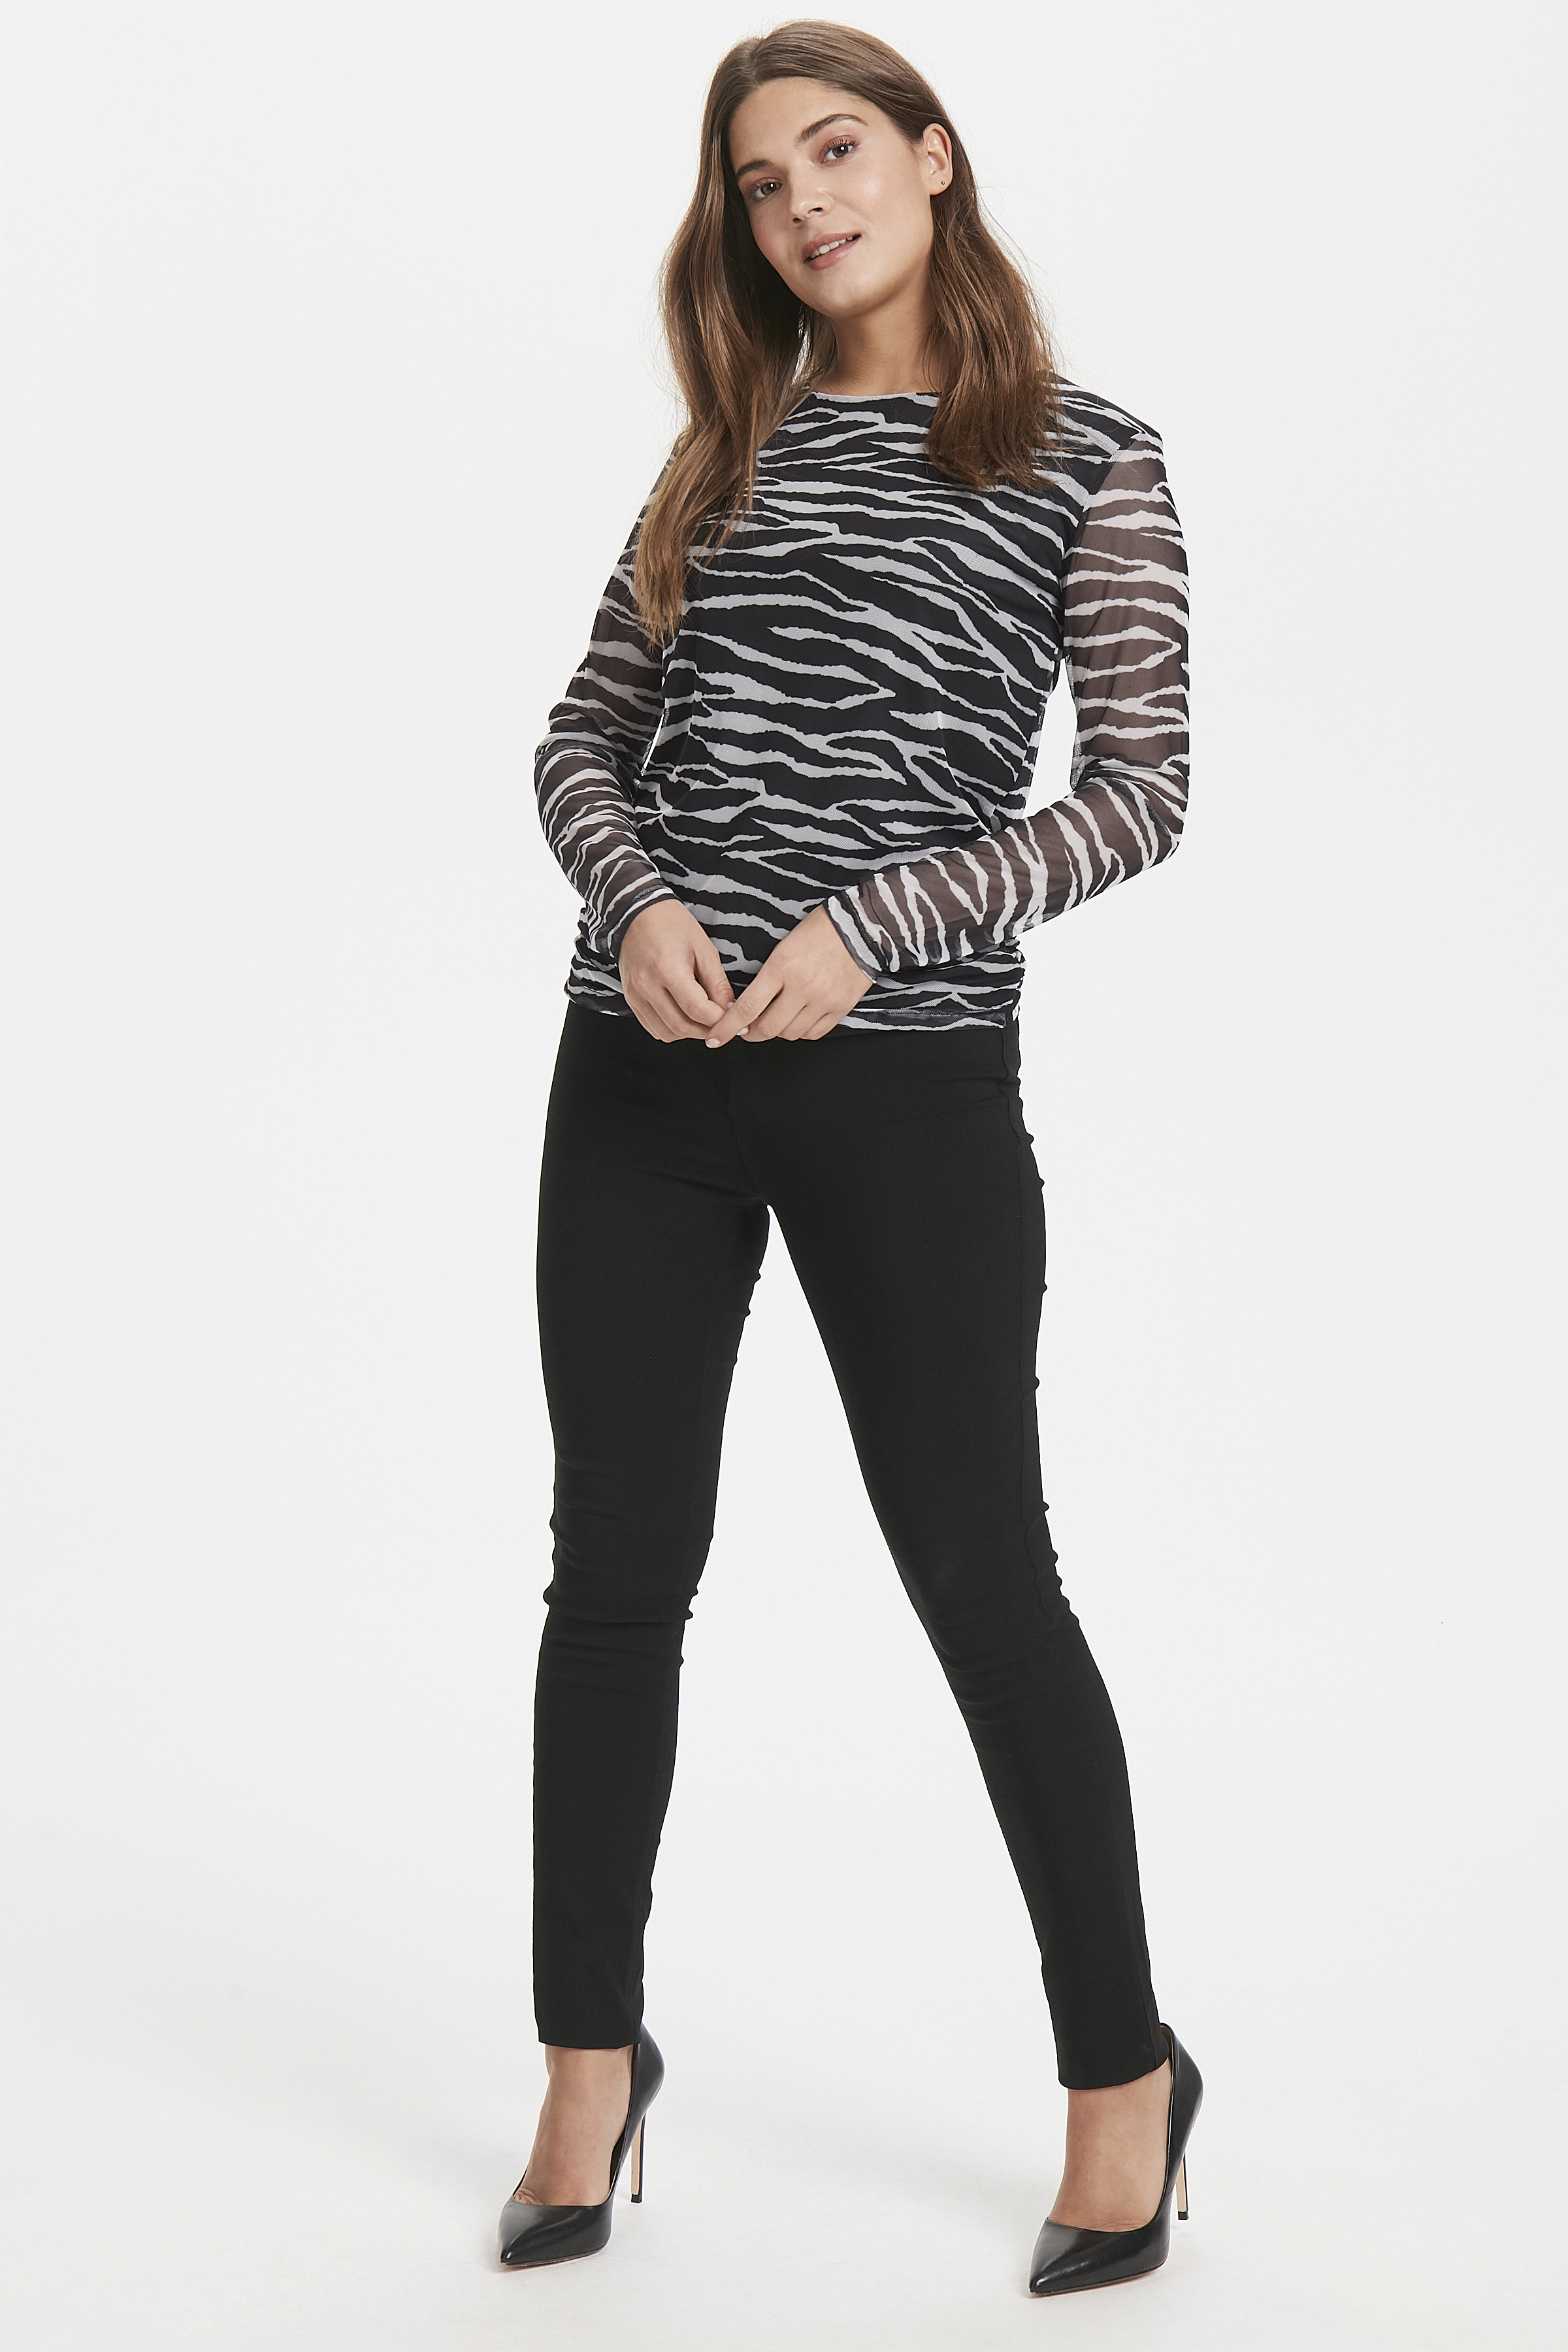 Zebra combi 1 T-shirt from b.young – Buy Zebra combi 1 T-shirt from size XS-XL here